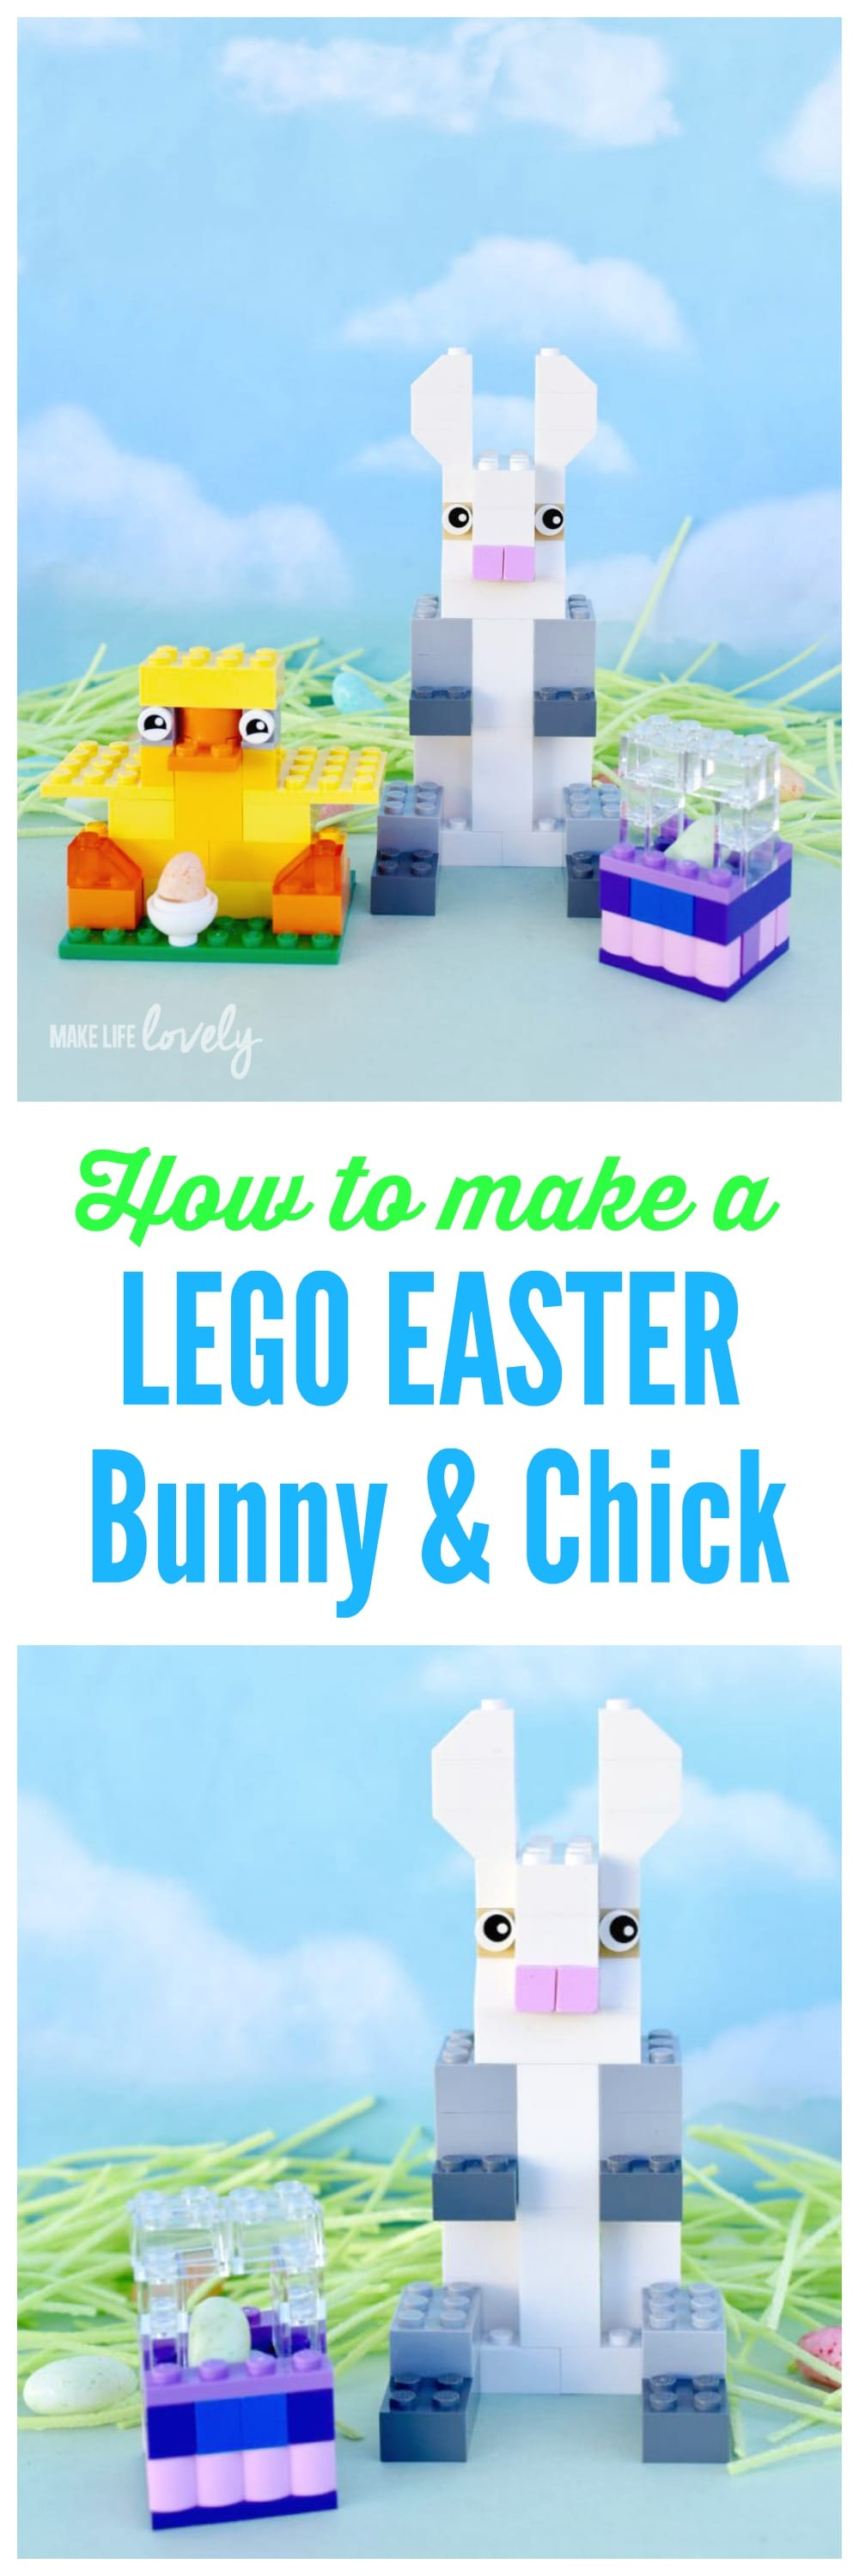 How To Make A Lego Easter Bunny, Chick, And Basket